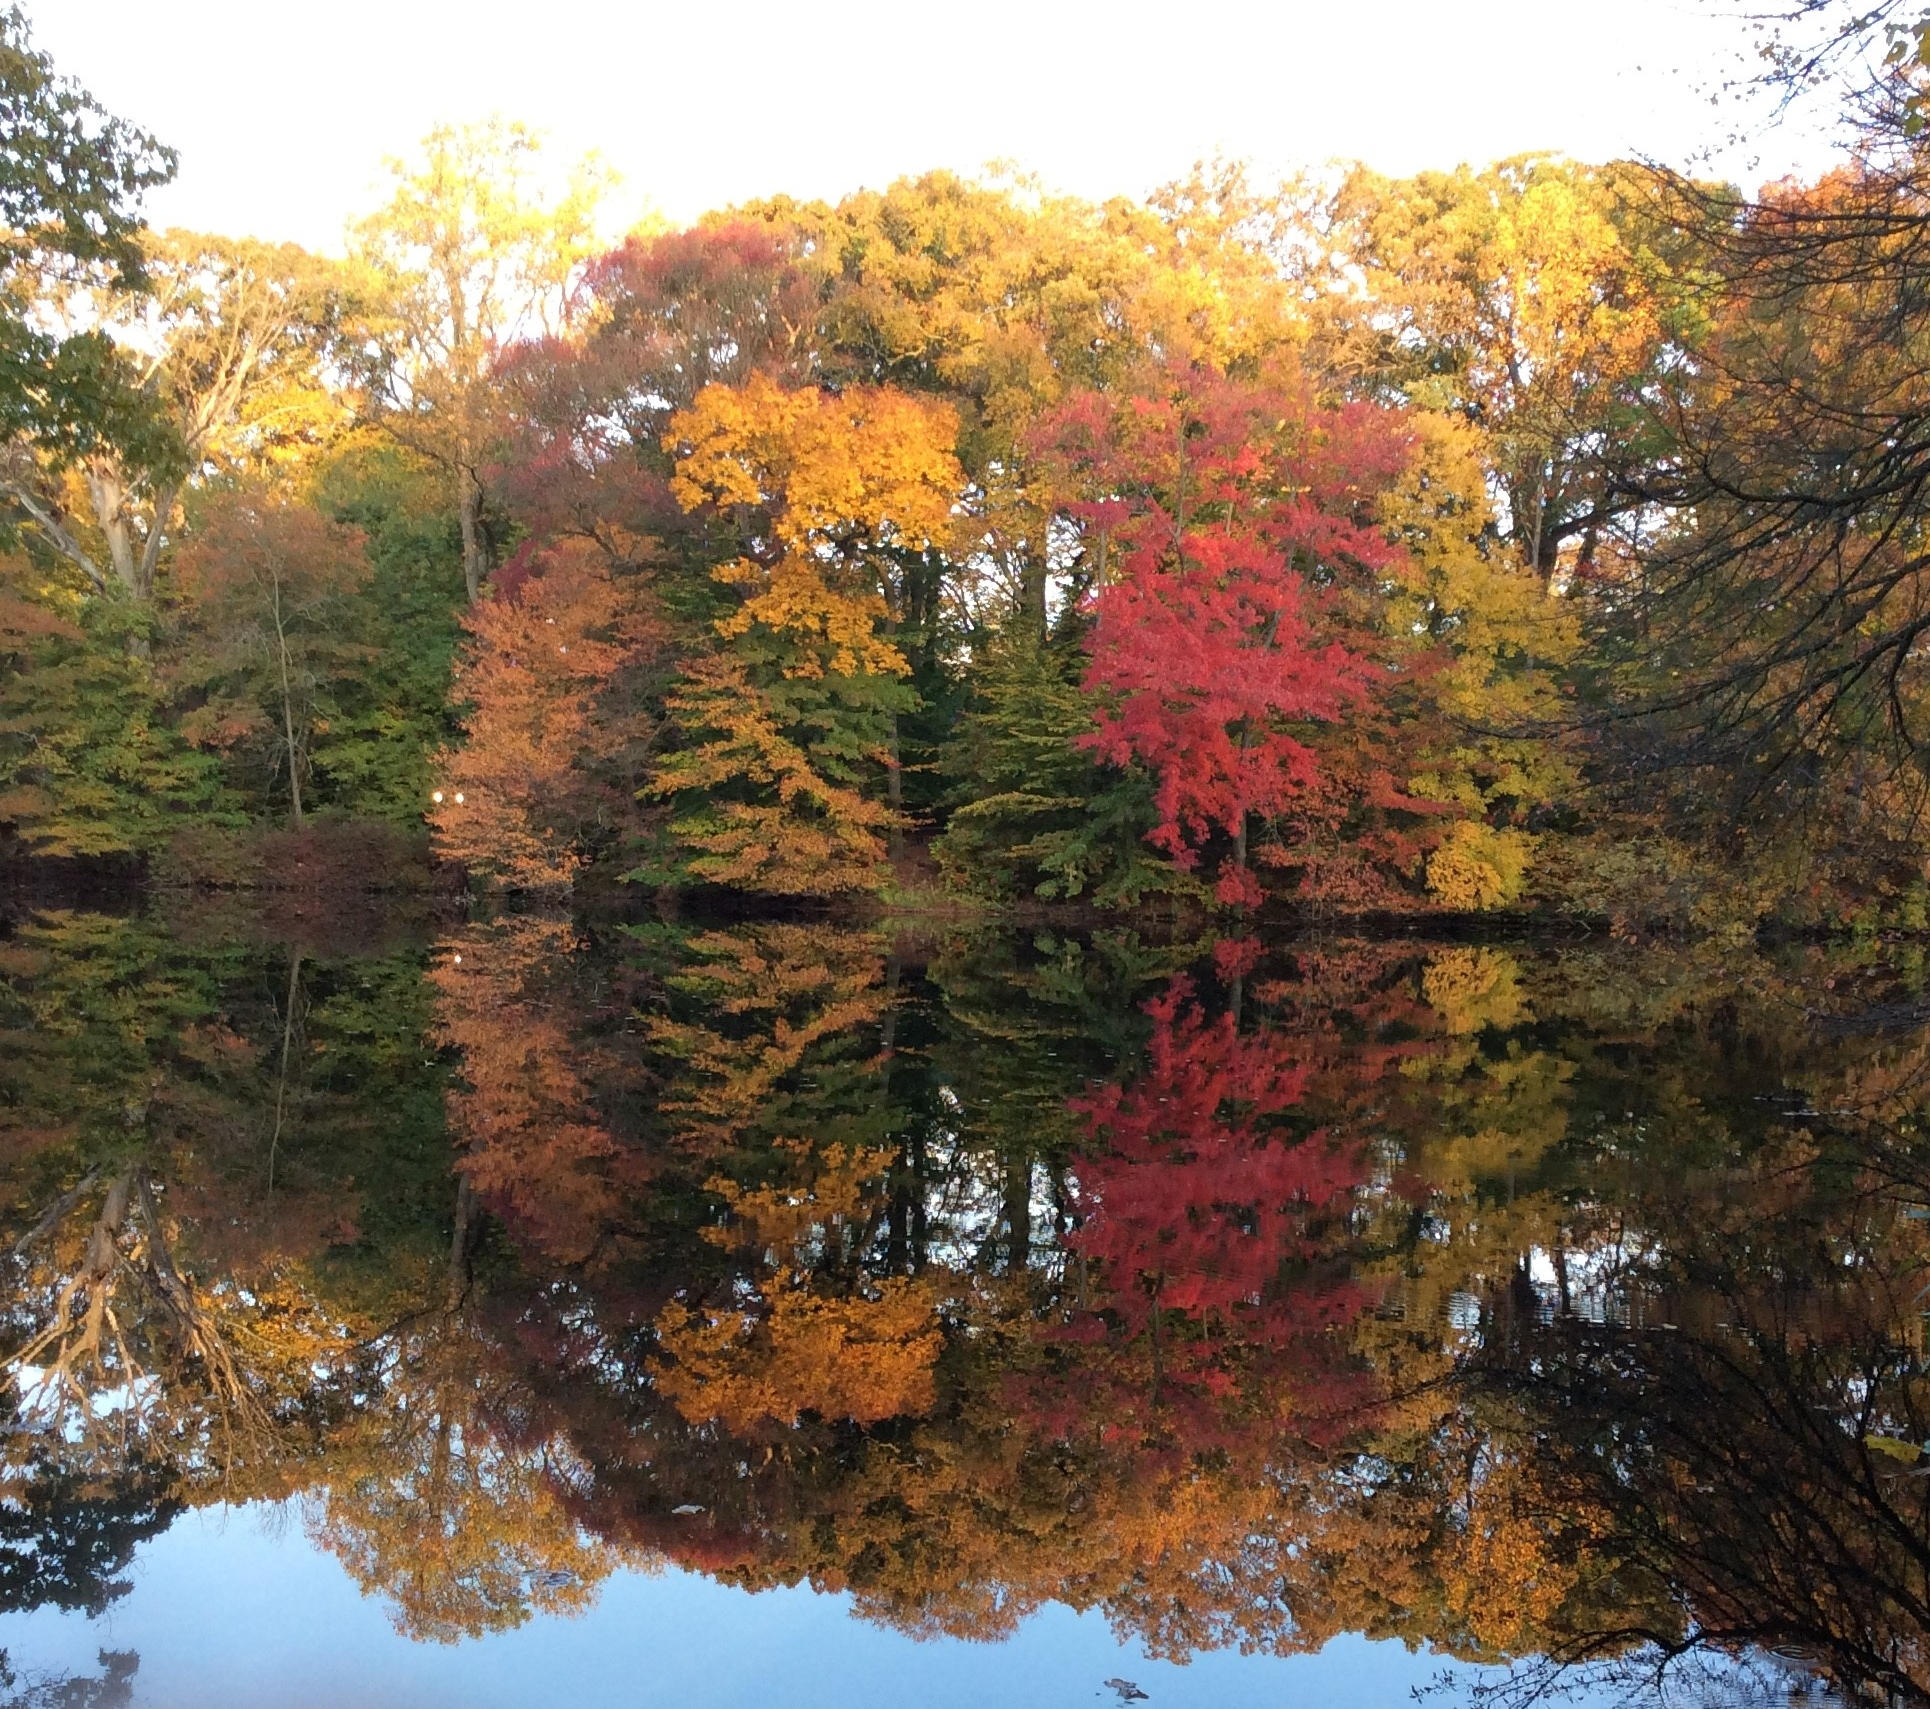 2016 Autumn on Hopkins Pond - Mary Previte